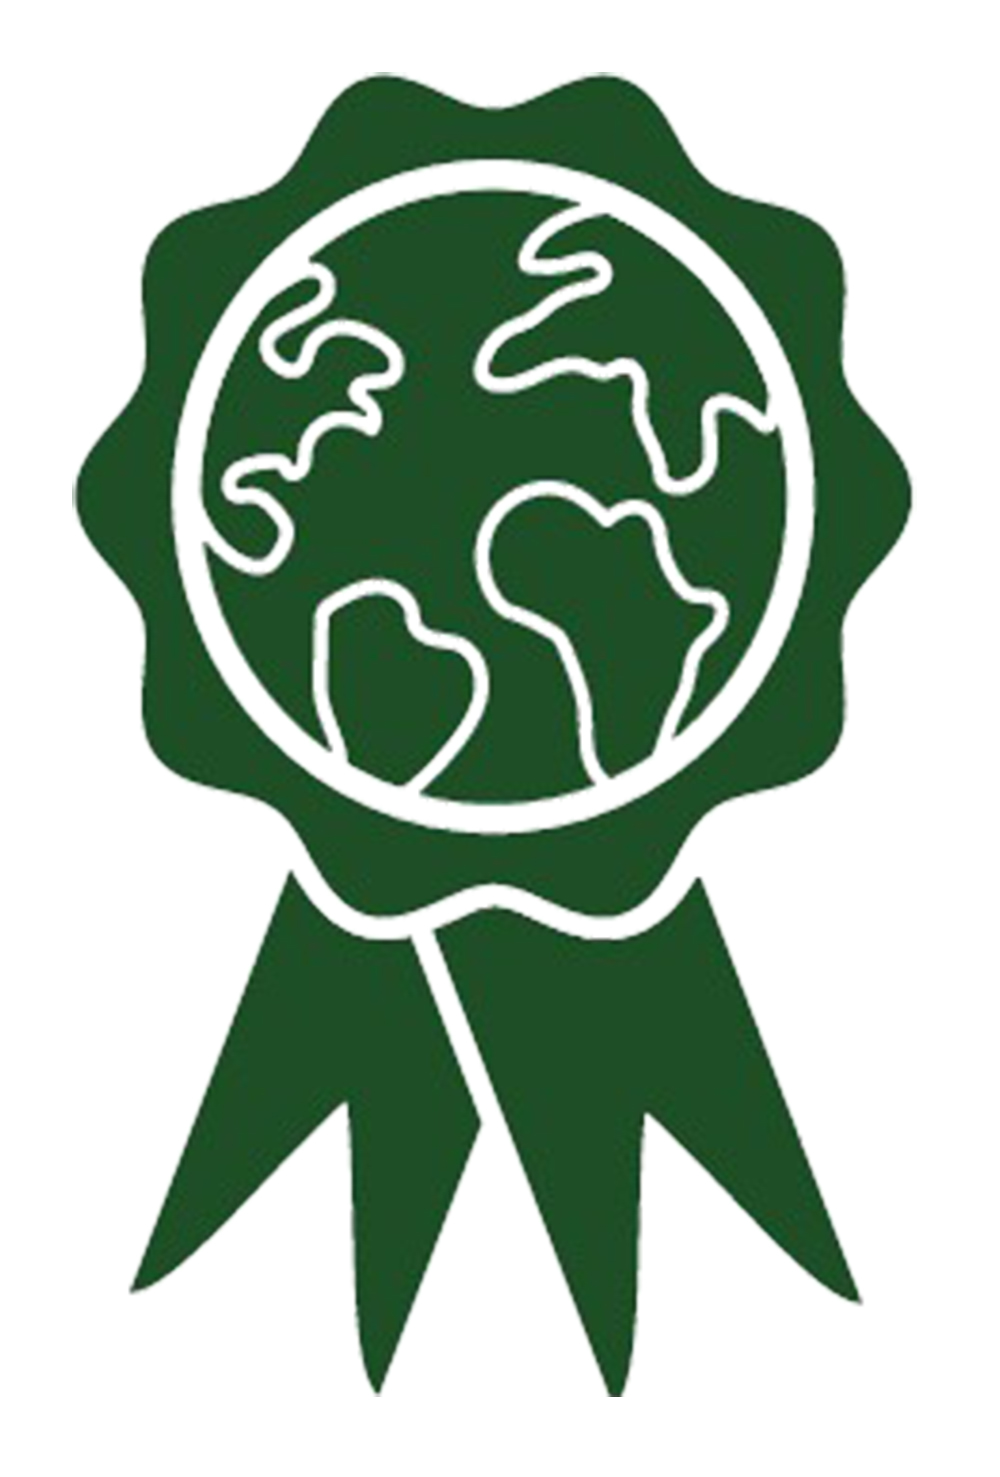 Remember to use recycled paper for your GreenKid Award!